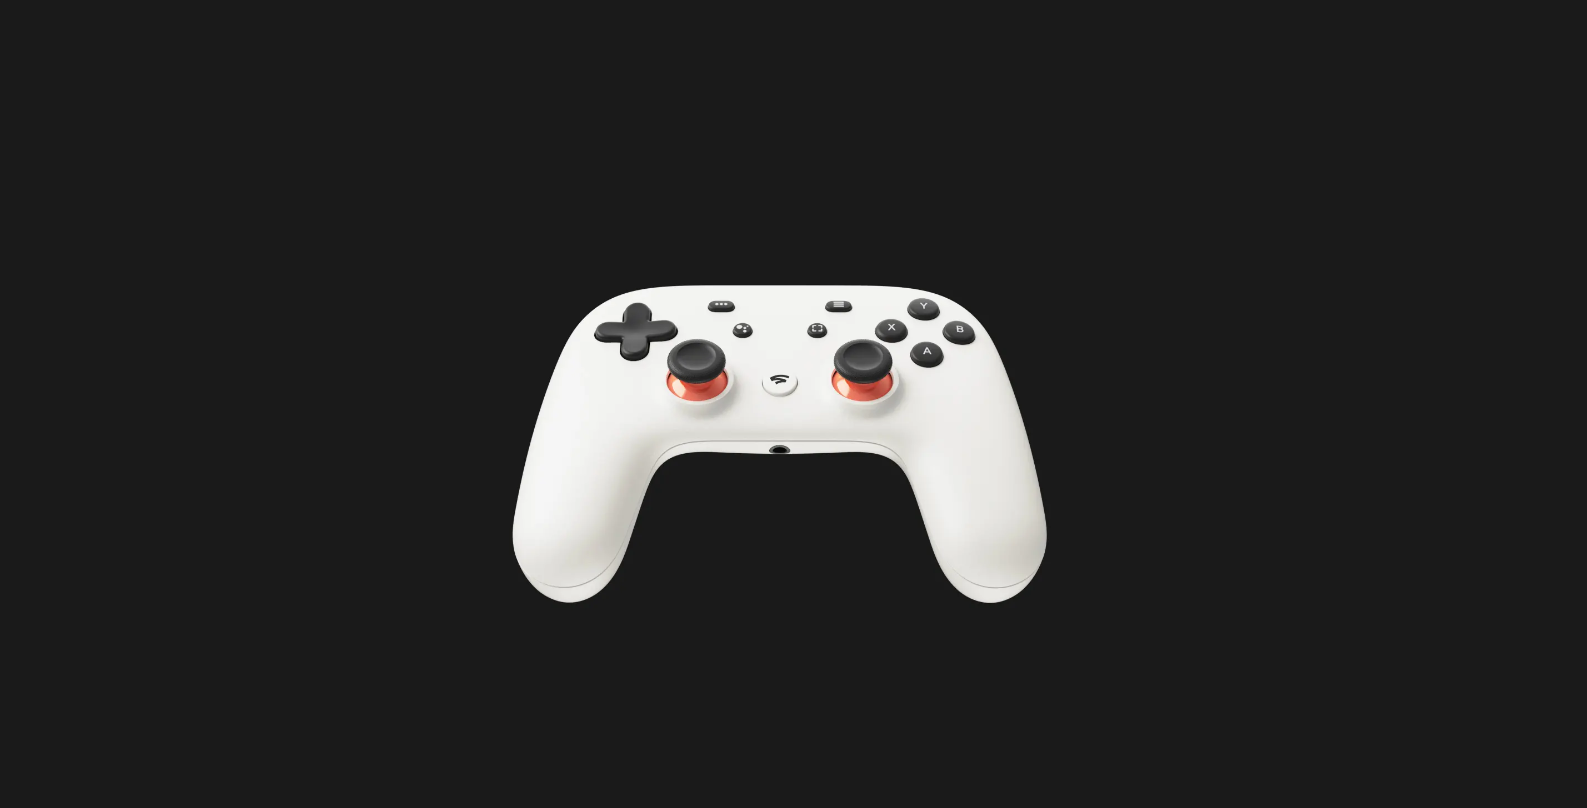 The Google Stadia controller opens when you enter the Konami code.